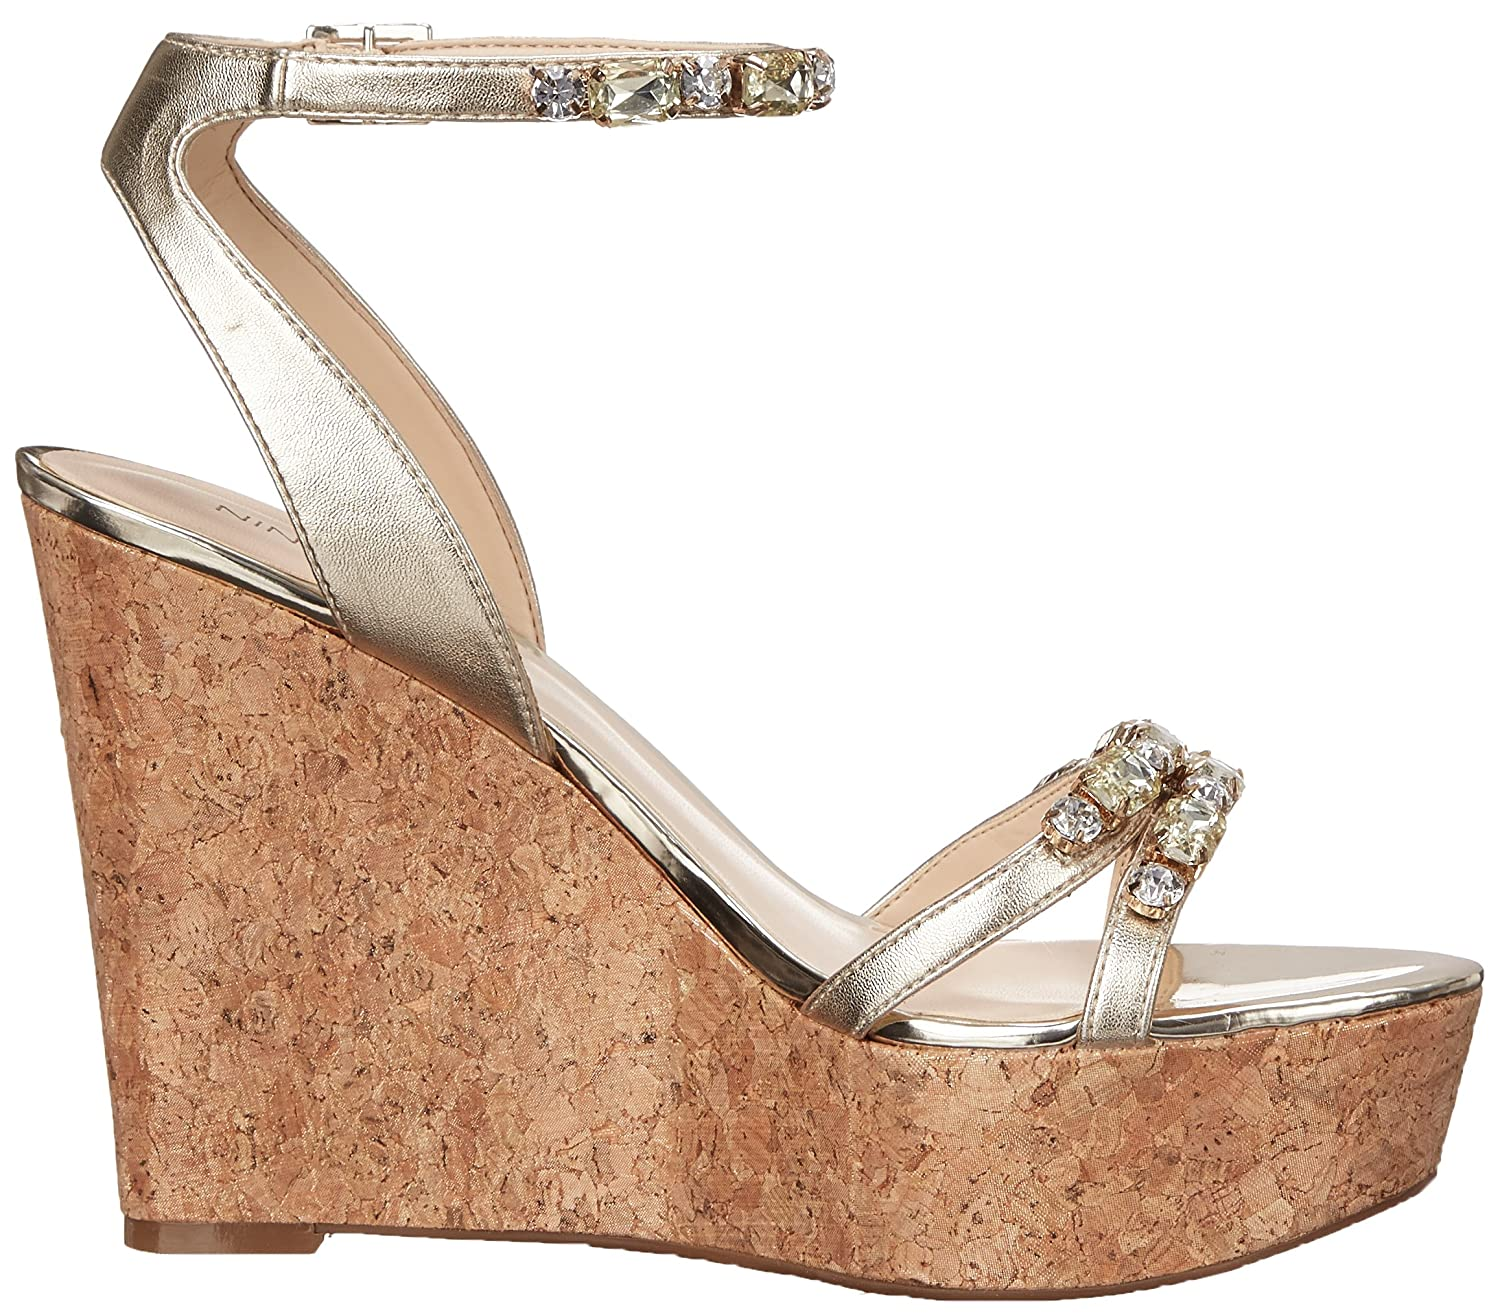 Nine West Women's Admiral Synthetic Wedge Sandal B00U2VJLFC 10.5 B(M) US|Light Gold